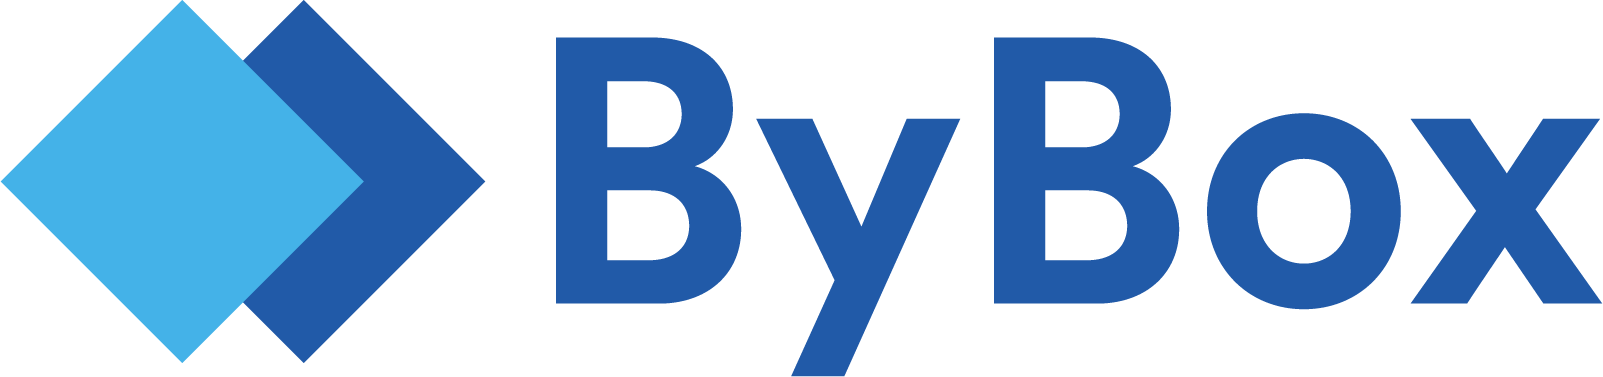 Blue logo - transparent background.png